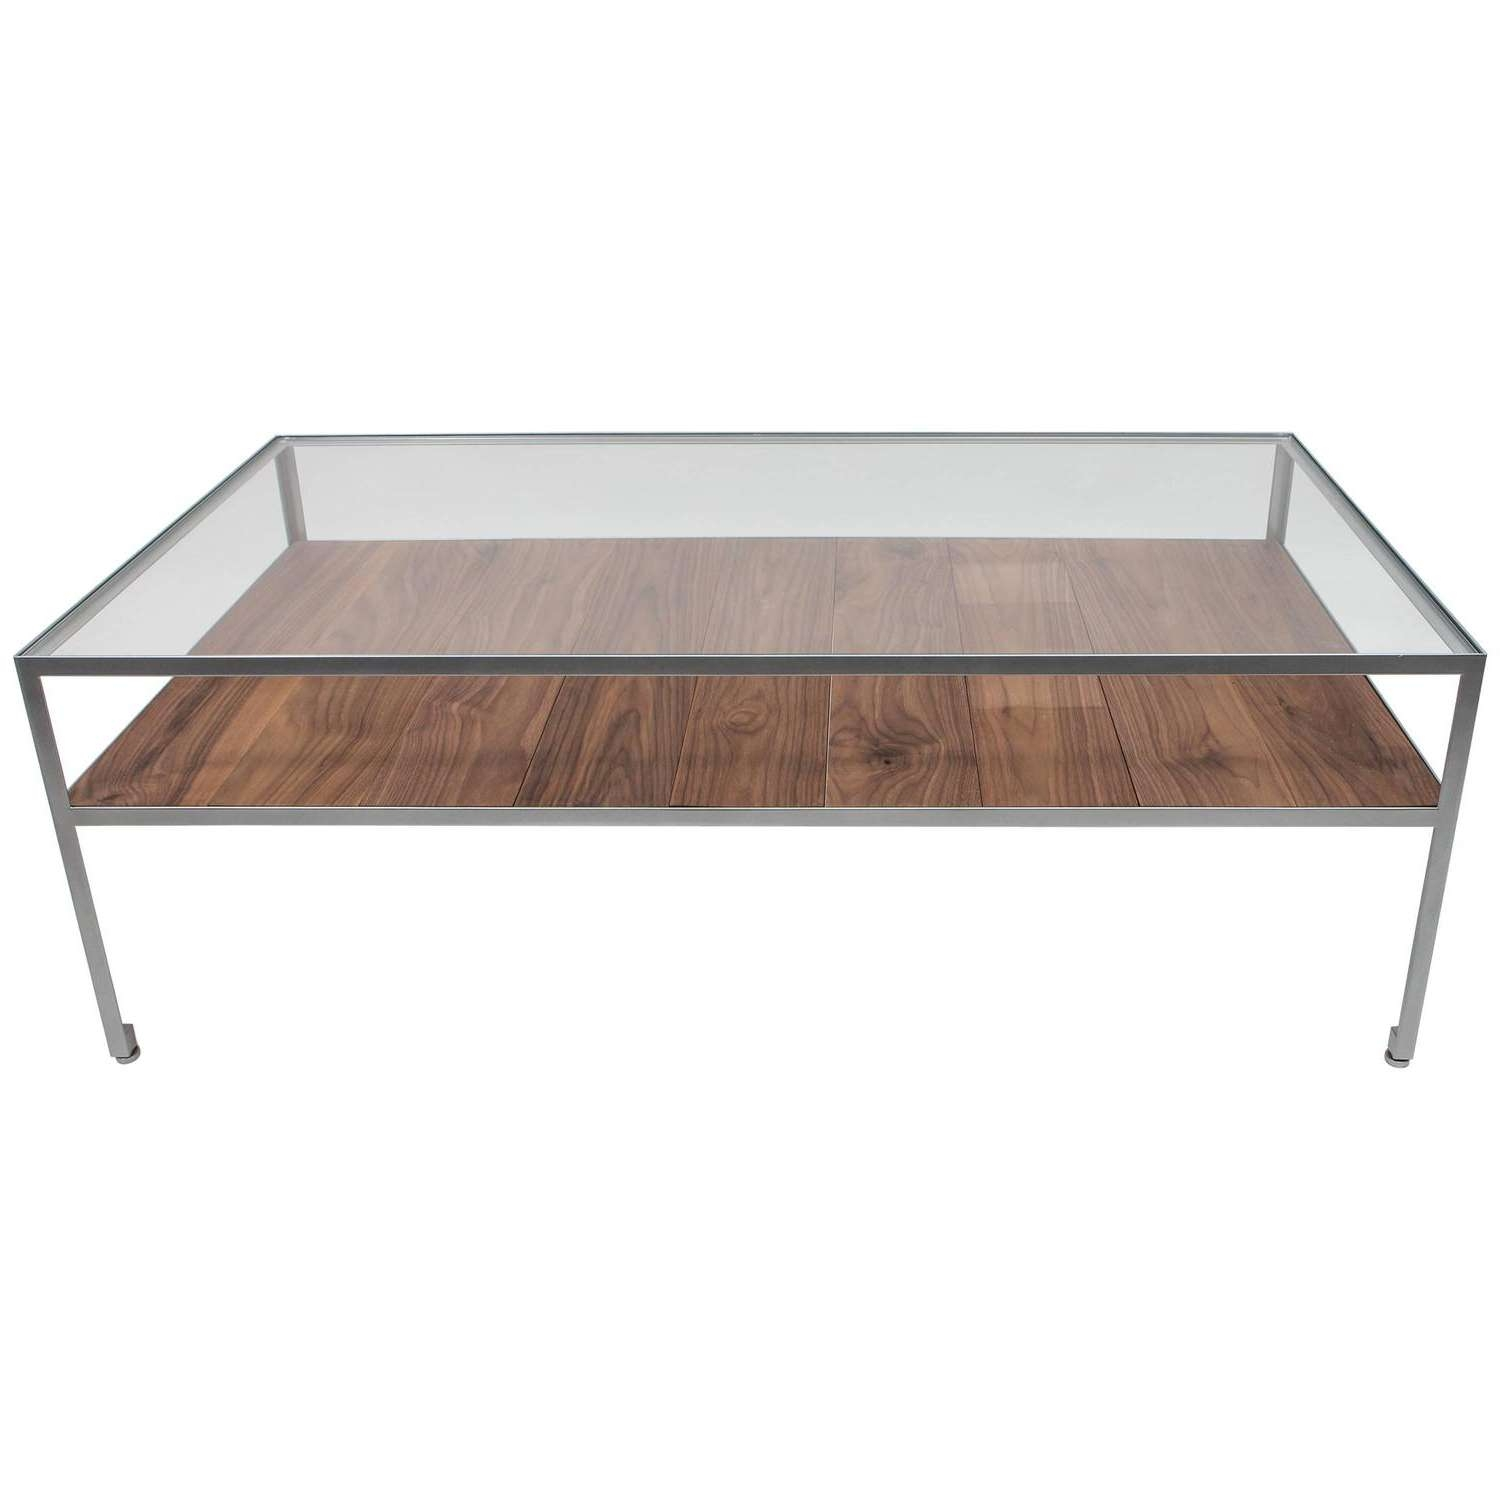 Round Nickel Over Steel Floating Glass Coffee Table For Sale At Intended For Latest Floating Glass Coffee Tables (Gallery 7 of 20)